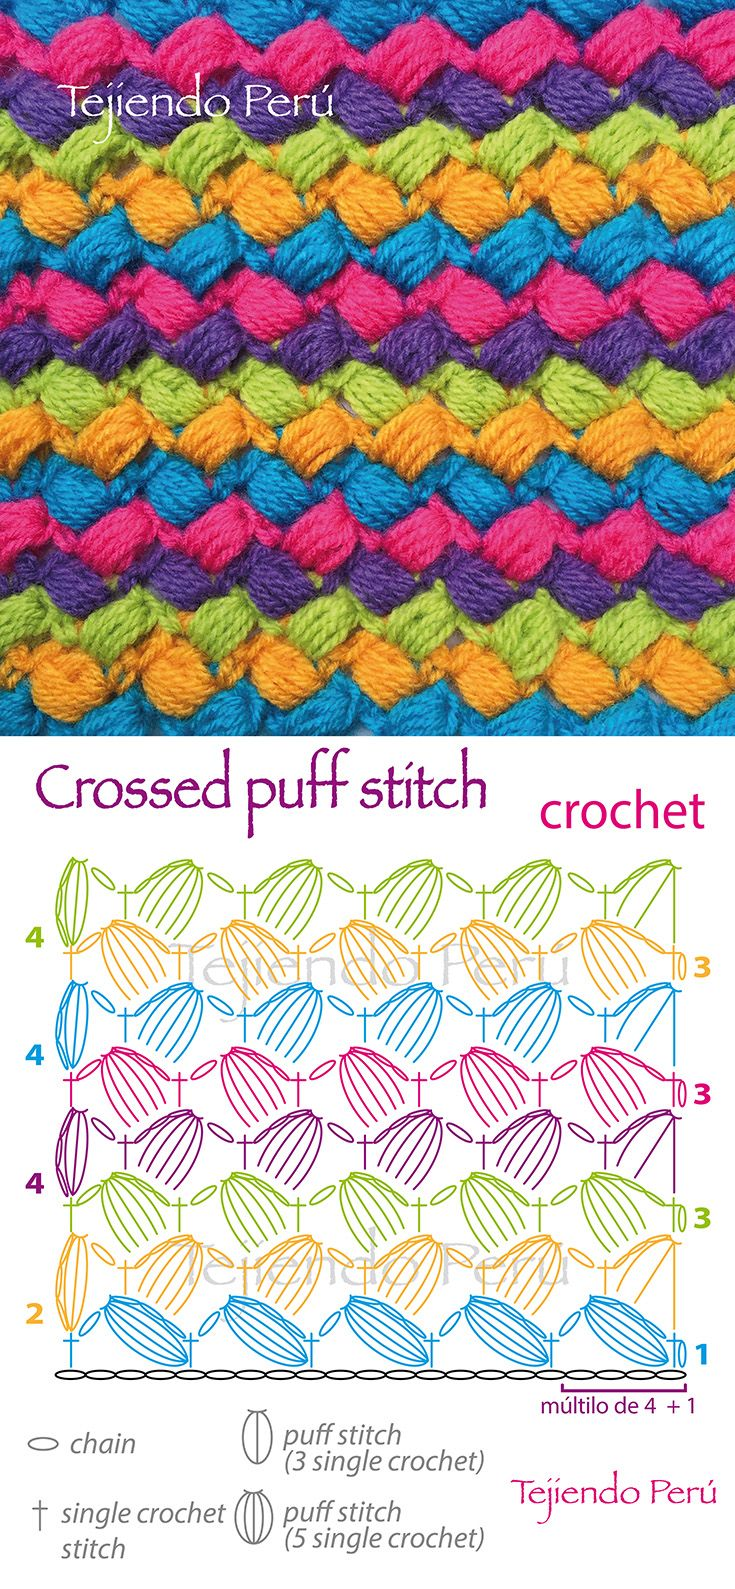 Crochet stitch diagram residential electrical symbols crochet crossed puff stitch pattern or diagram rh pinterest ca crochet stitch diagram creator crochet stitch diagram drawing program ccuart Choice Image